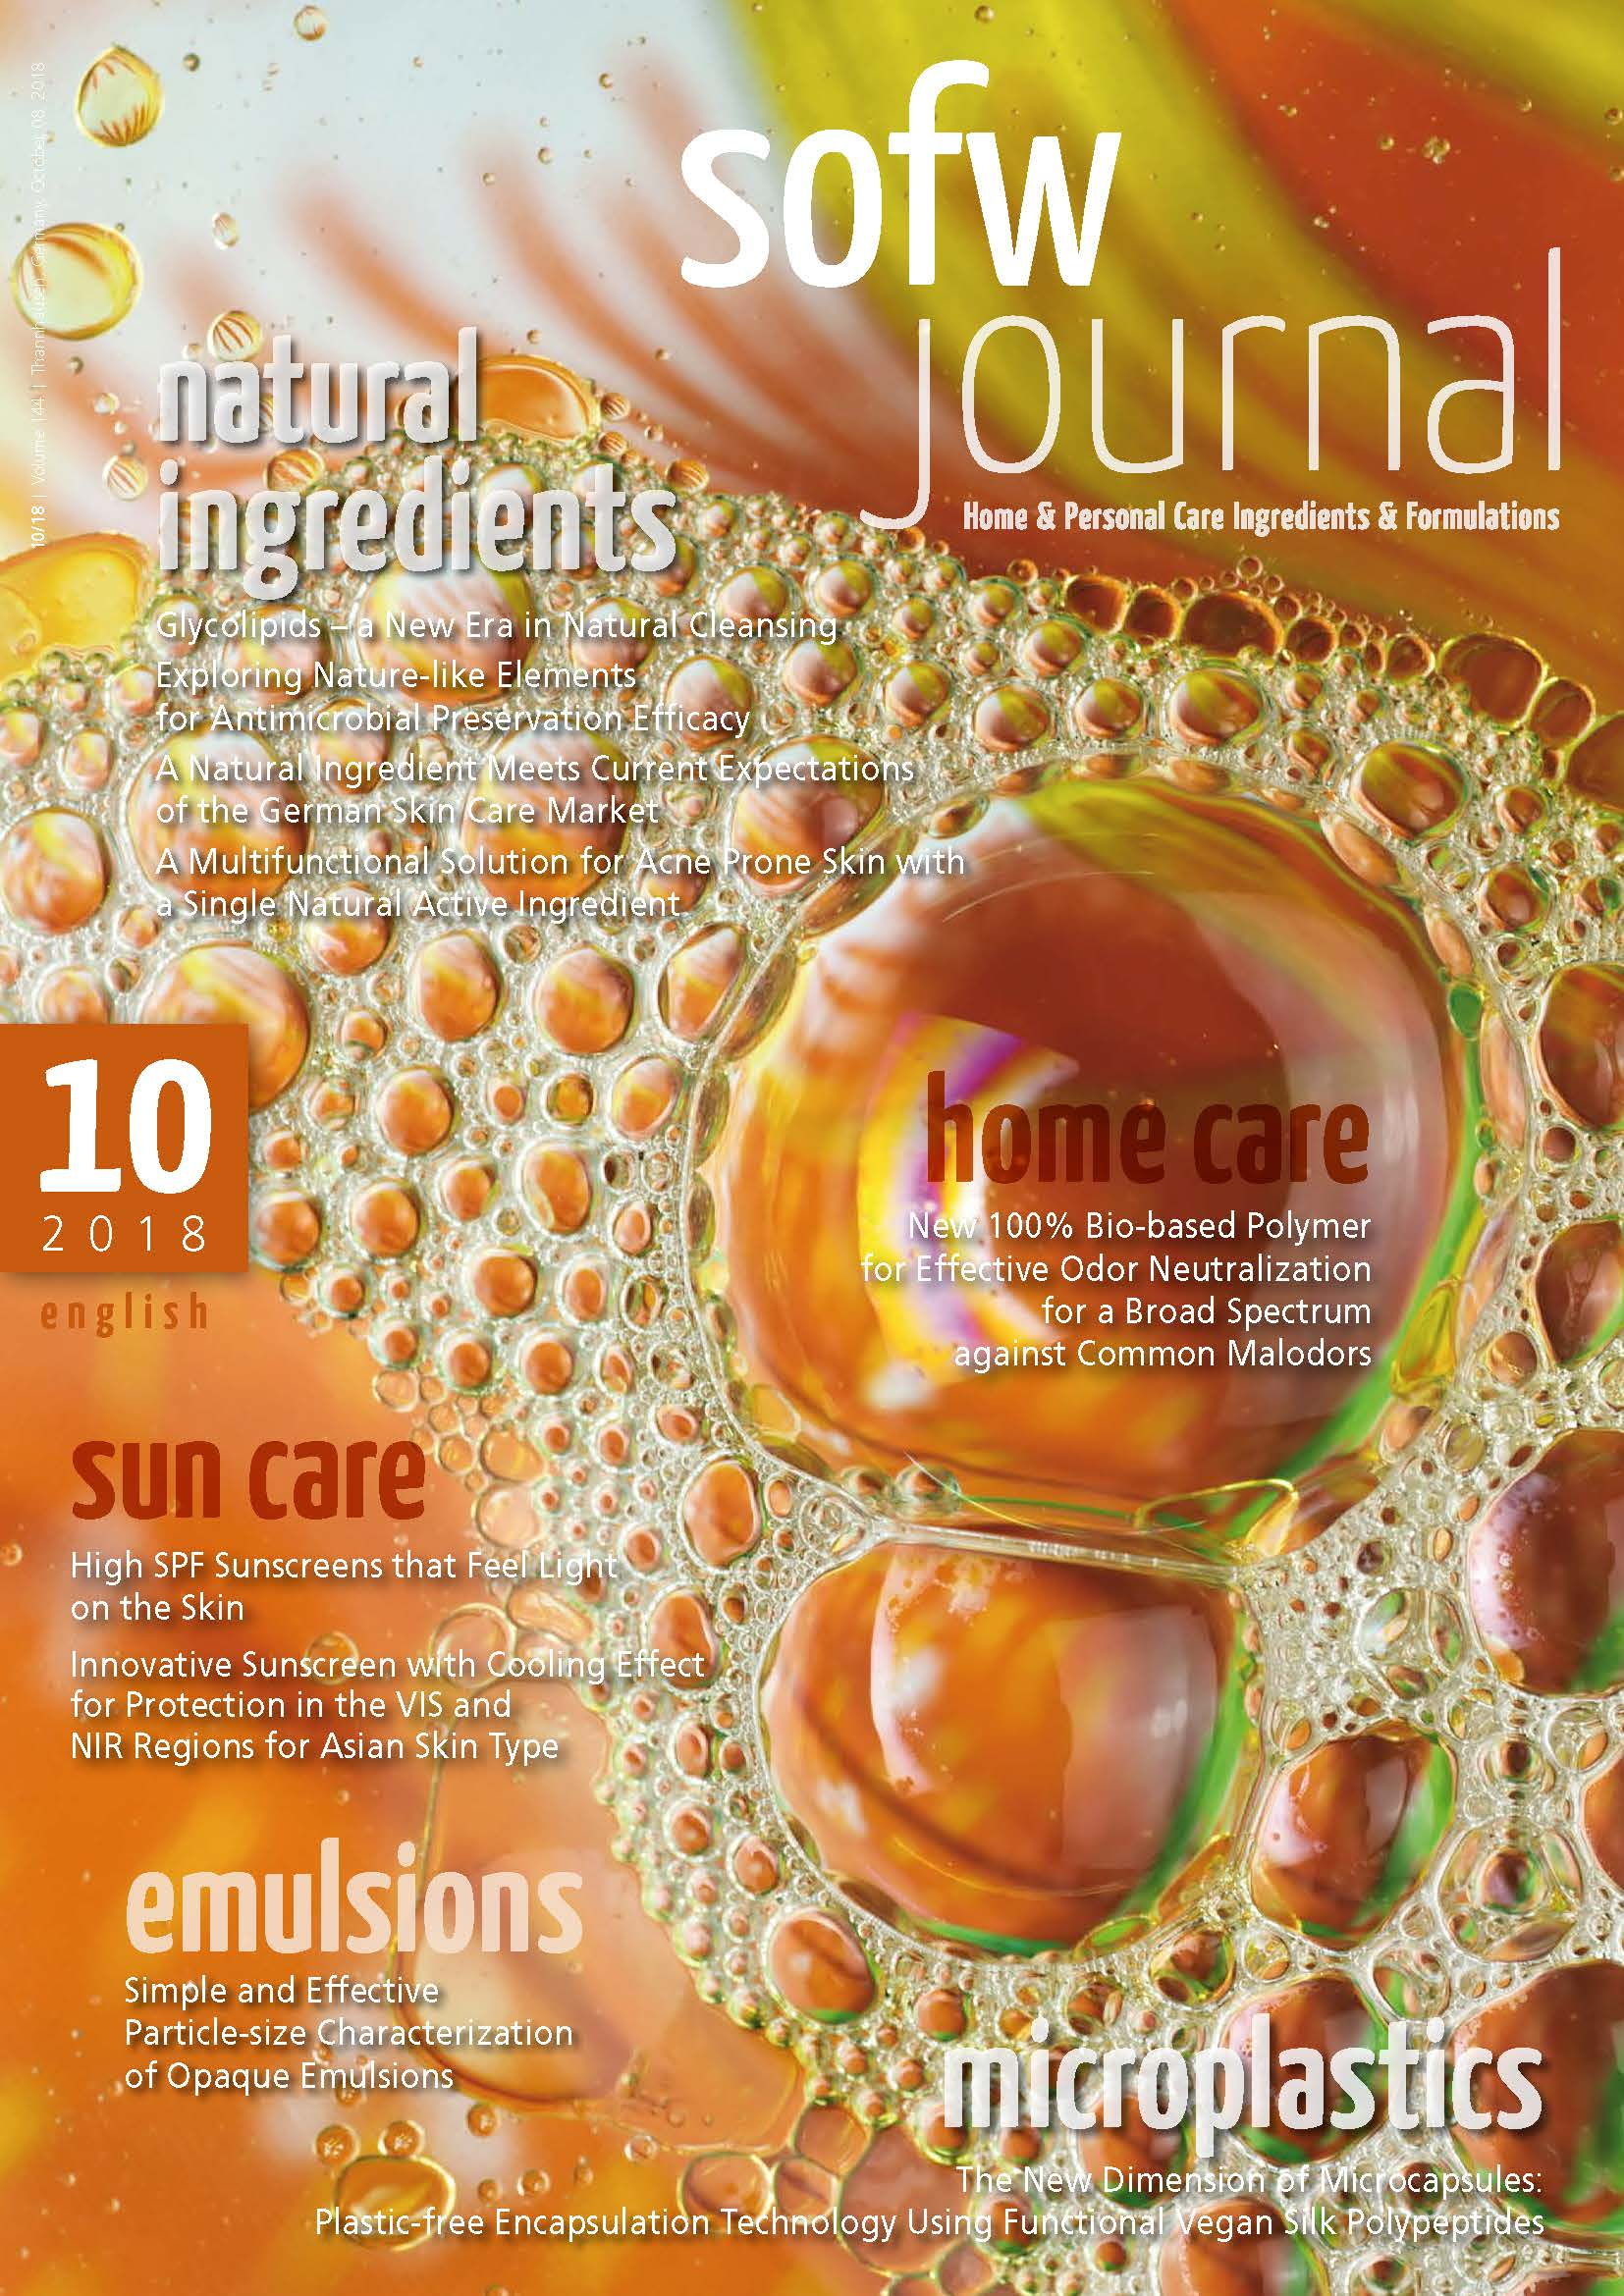 sofwjournal_en_2018_10_cover_423396255